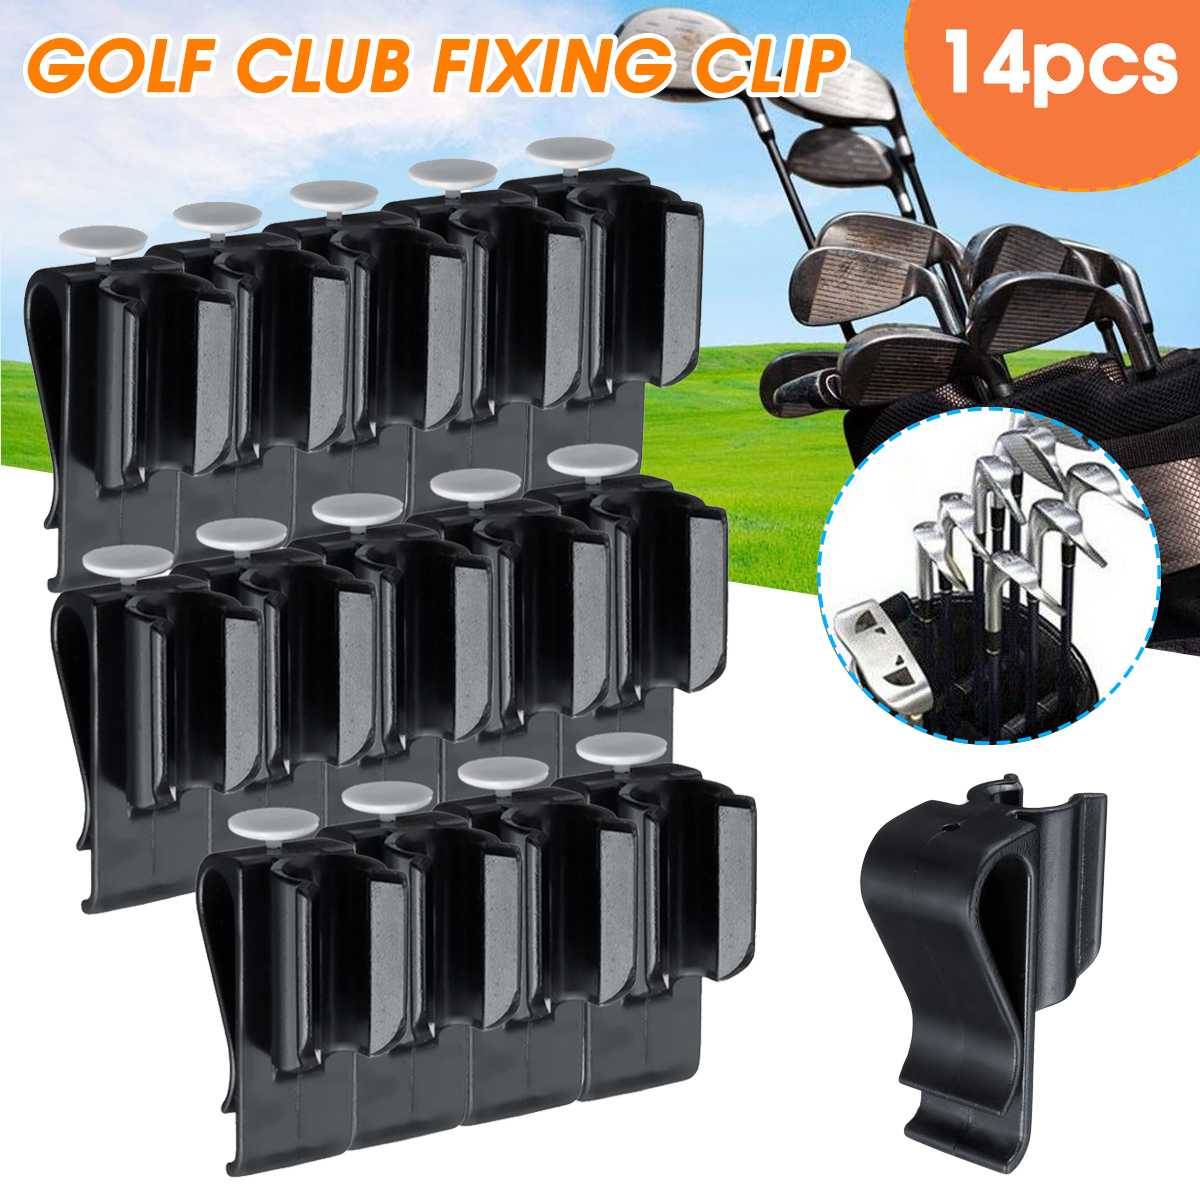 Premium 14 Pcs Sports Golf Bag Clip On Putter Clamp Holder Putting Organizer Club Golf Club Grips Golf Equipment